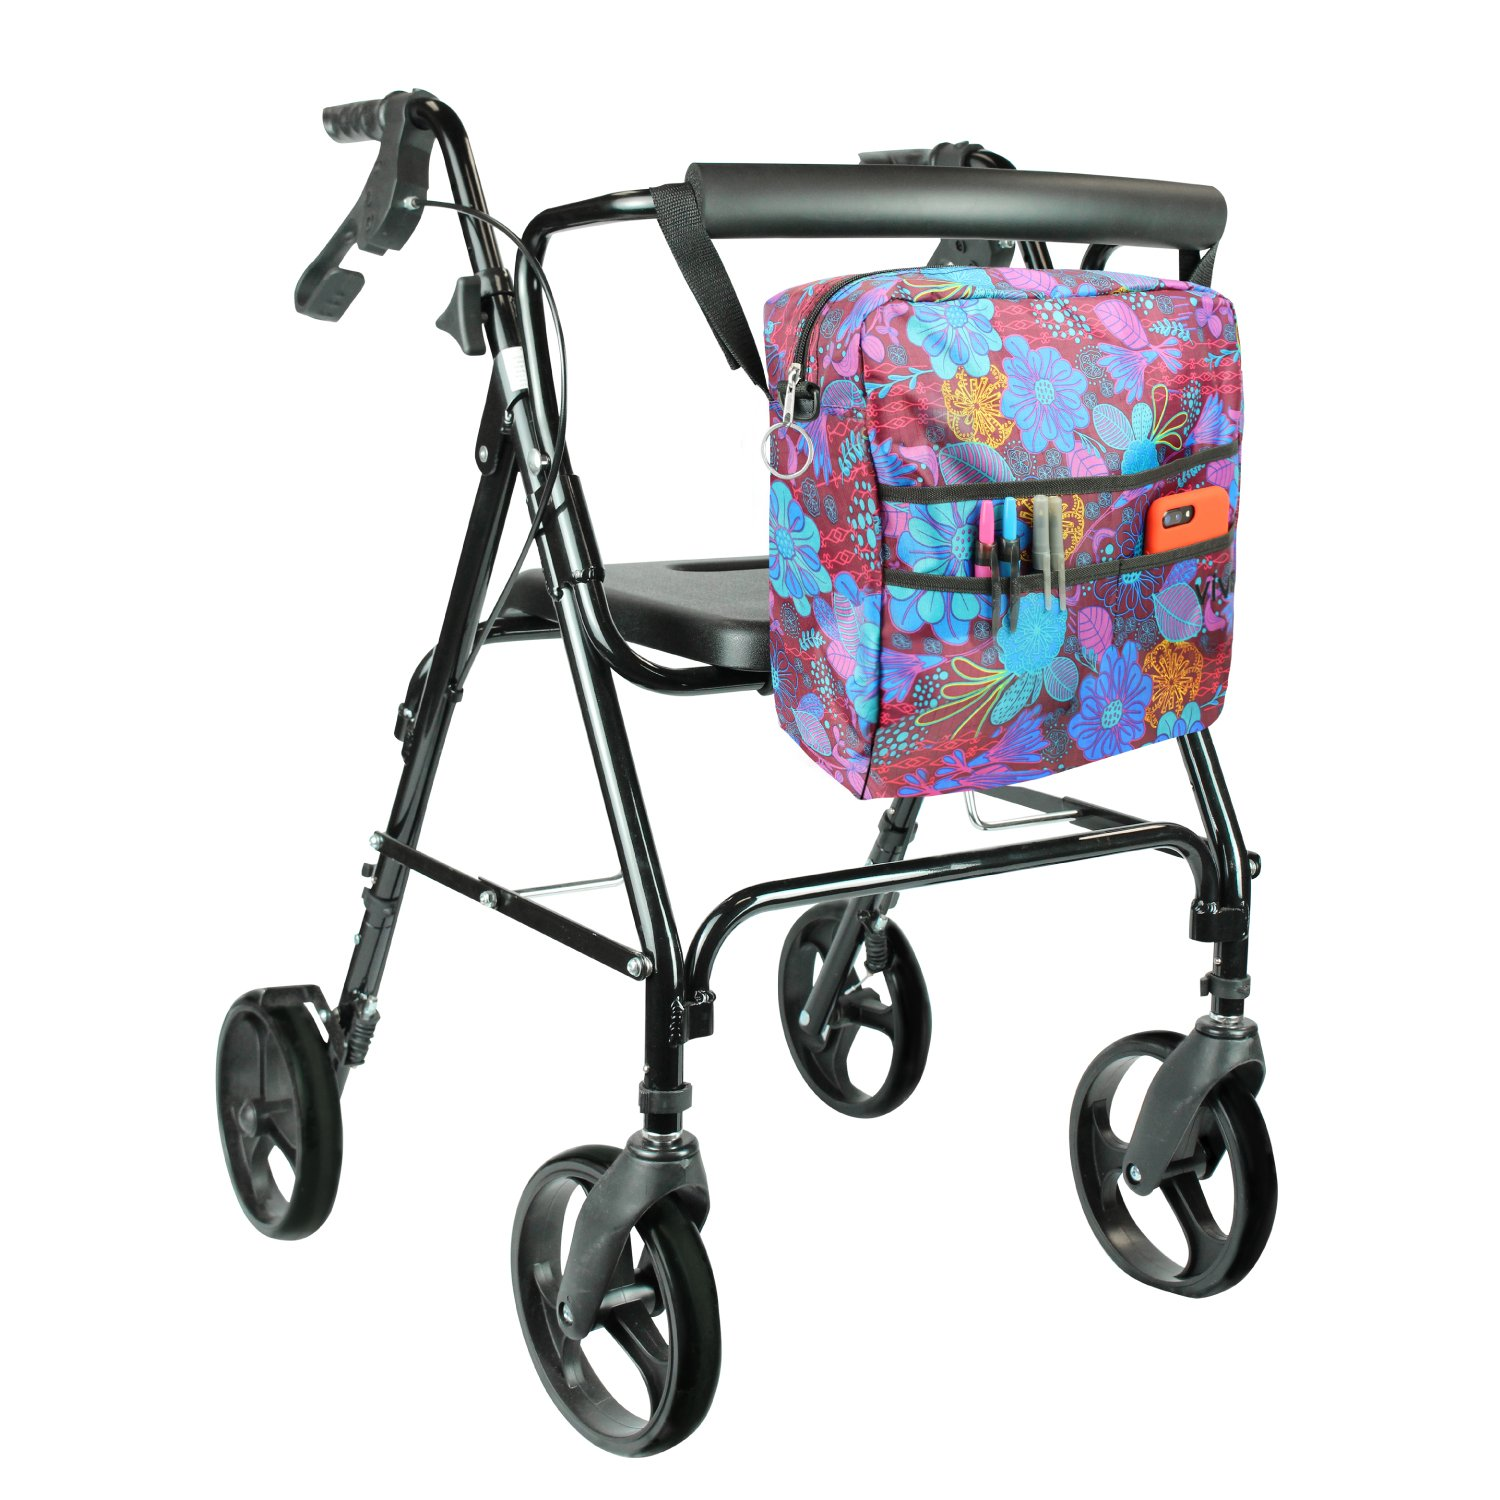 Rollator Bag by Vive - Universal Travel Tote for Carrying Accessories on Wheelchair, Rollator, Rolling Walkers & Transport Chairs - Lightweight Handicap Medical Mobility Aid, Purple Floral